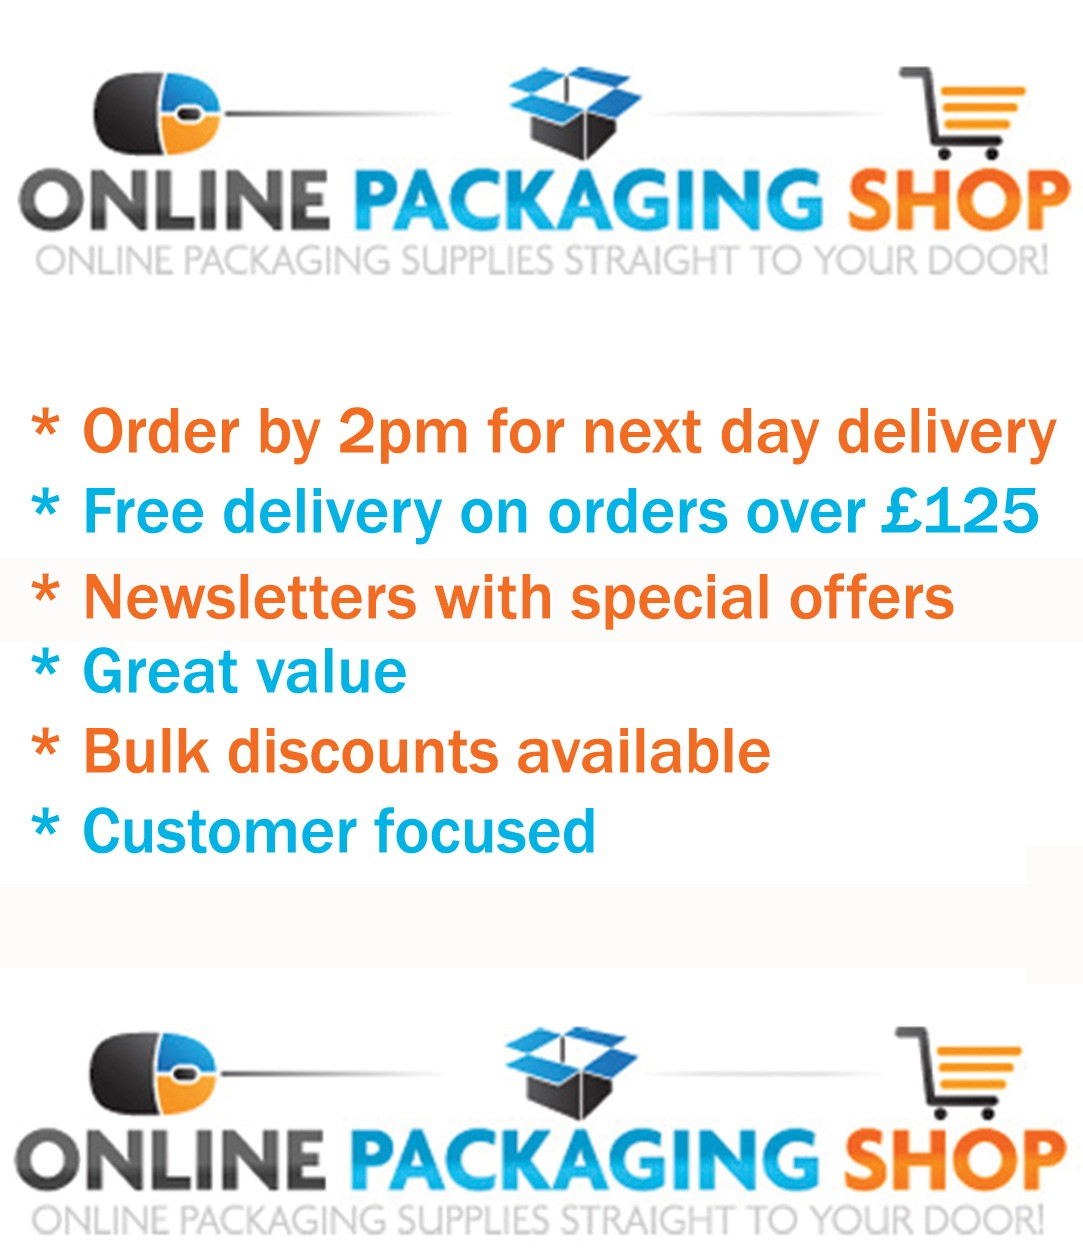 Online Packaging Shop